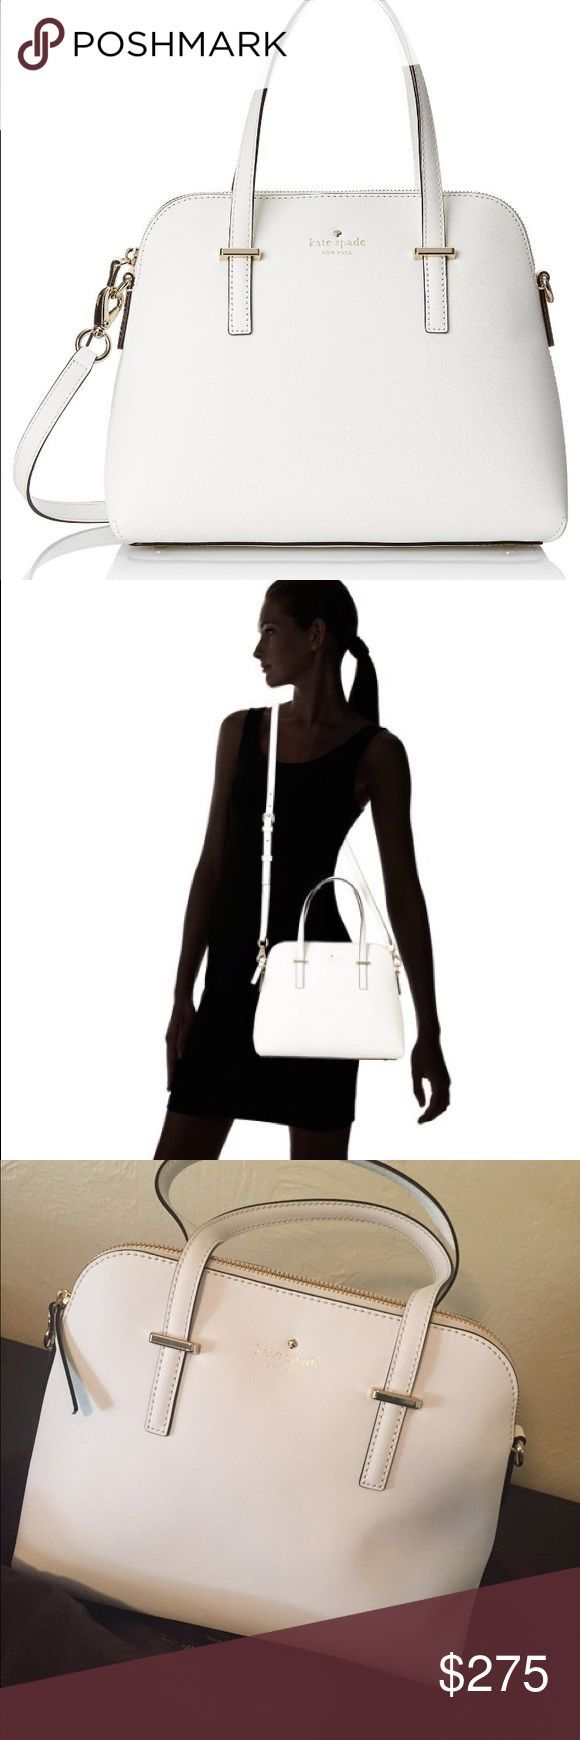 Authentic Kate Spade Handbag! Adorable Bright White Kate Spade Handbag with cross body strap included! Brand new, NEVER before used without tags. Kate spade dust bag included!! kate spade Bags - white handbag sale, handbags black leather, cheap womens purses *sponsored https://www.pinterest.com/purses_handbags/ https://www.pinterest.com/explore/purses/ https://www.pinterest.com/purses_handbags/designer-handbags/ http://www.zappos.com/bags